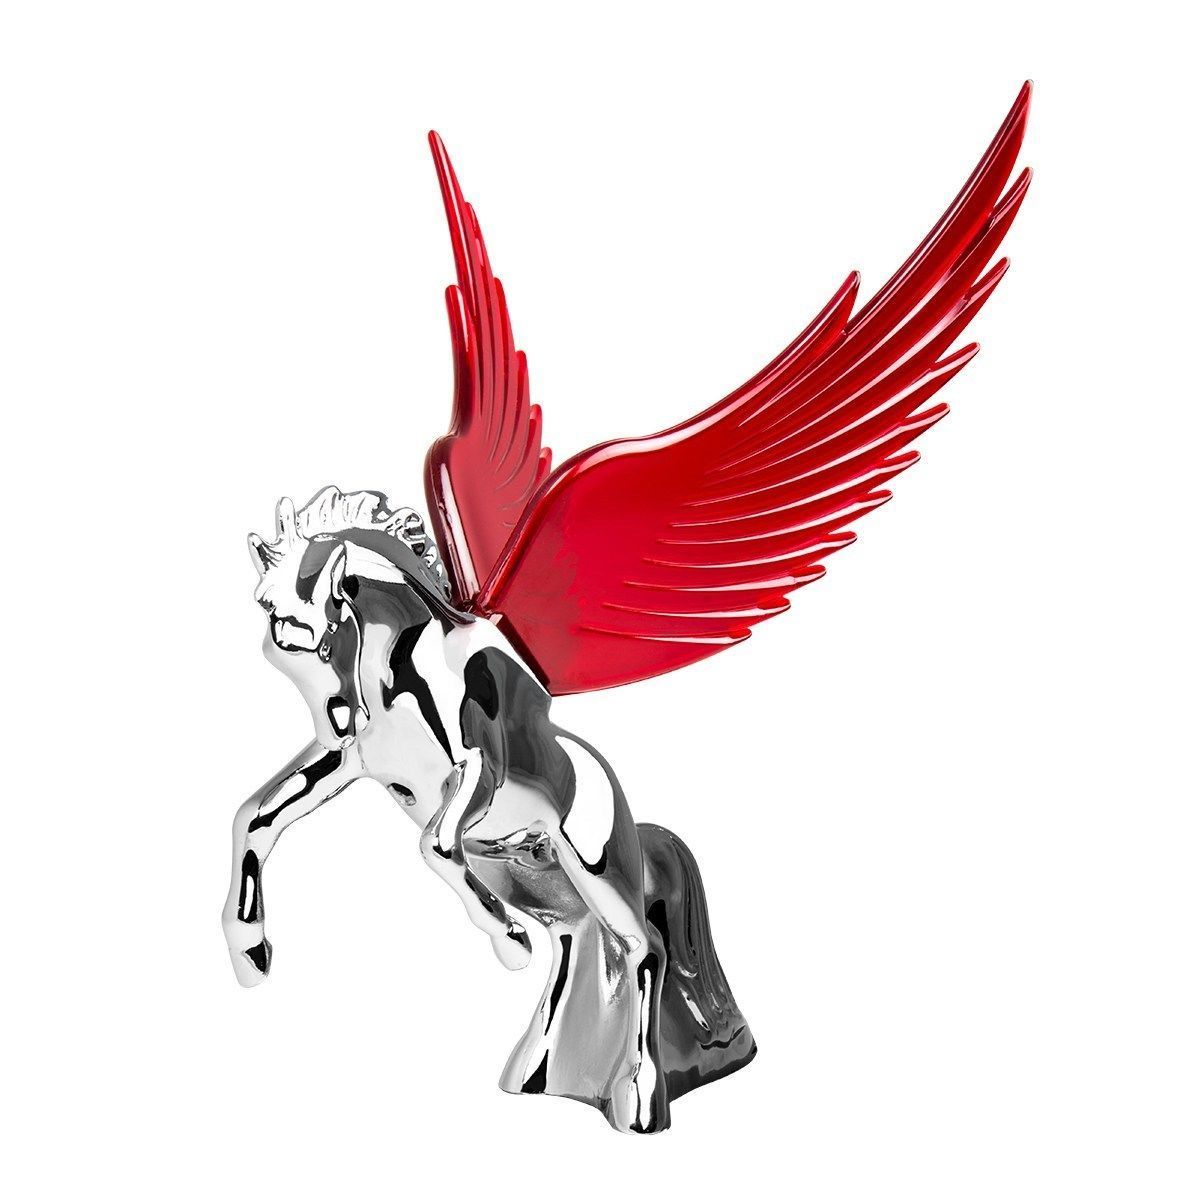 Hood Ornament Flying Stallion Chrome w/ RED Windrider WINGS - Peterbilt KW FL